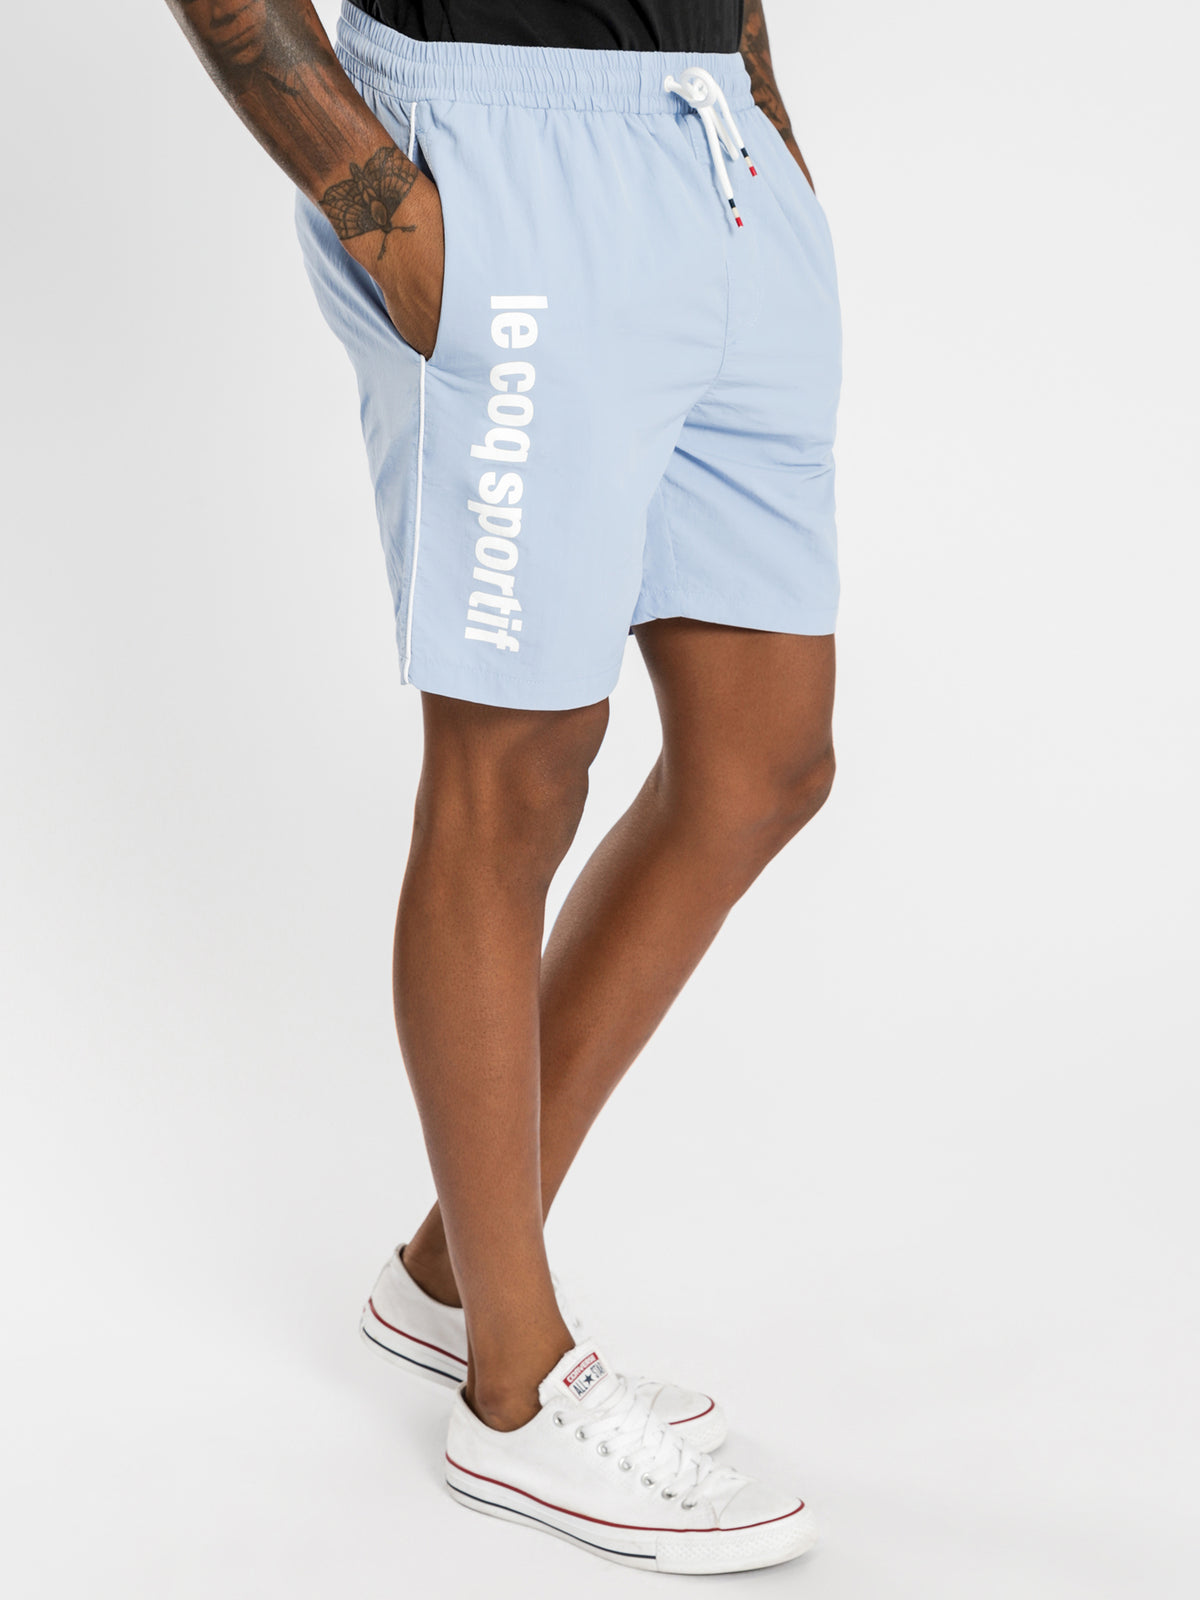 Concurrent Shorts in Light Blue